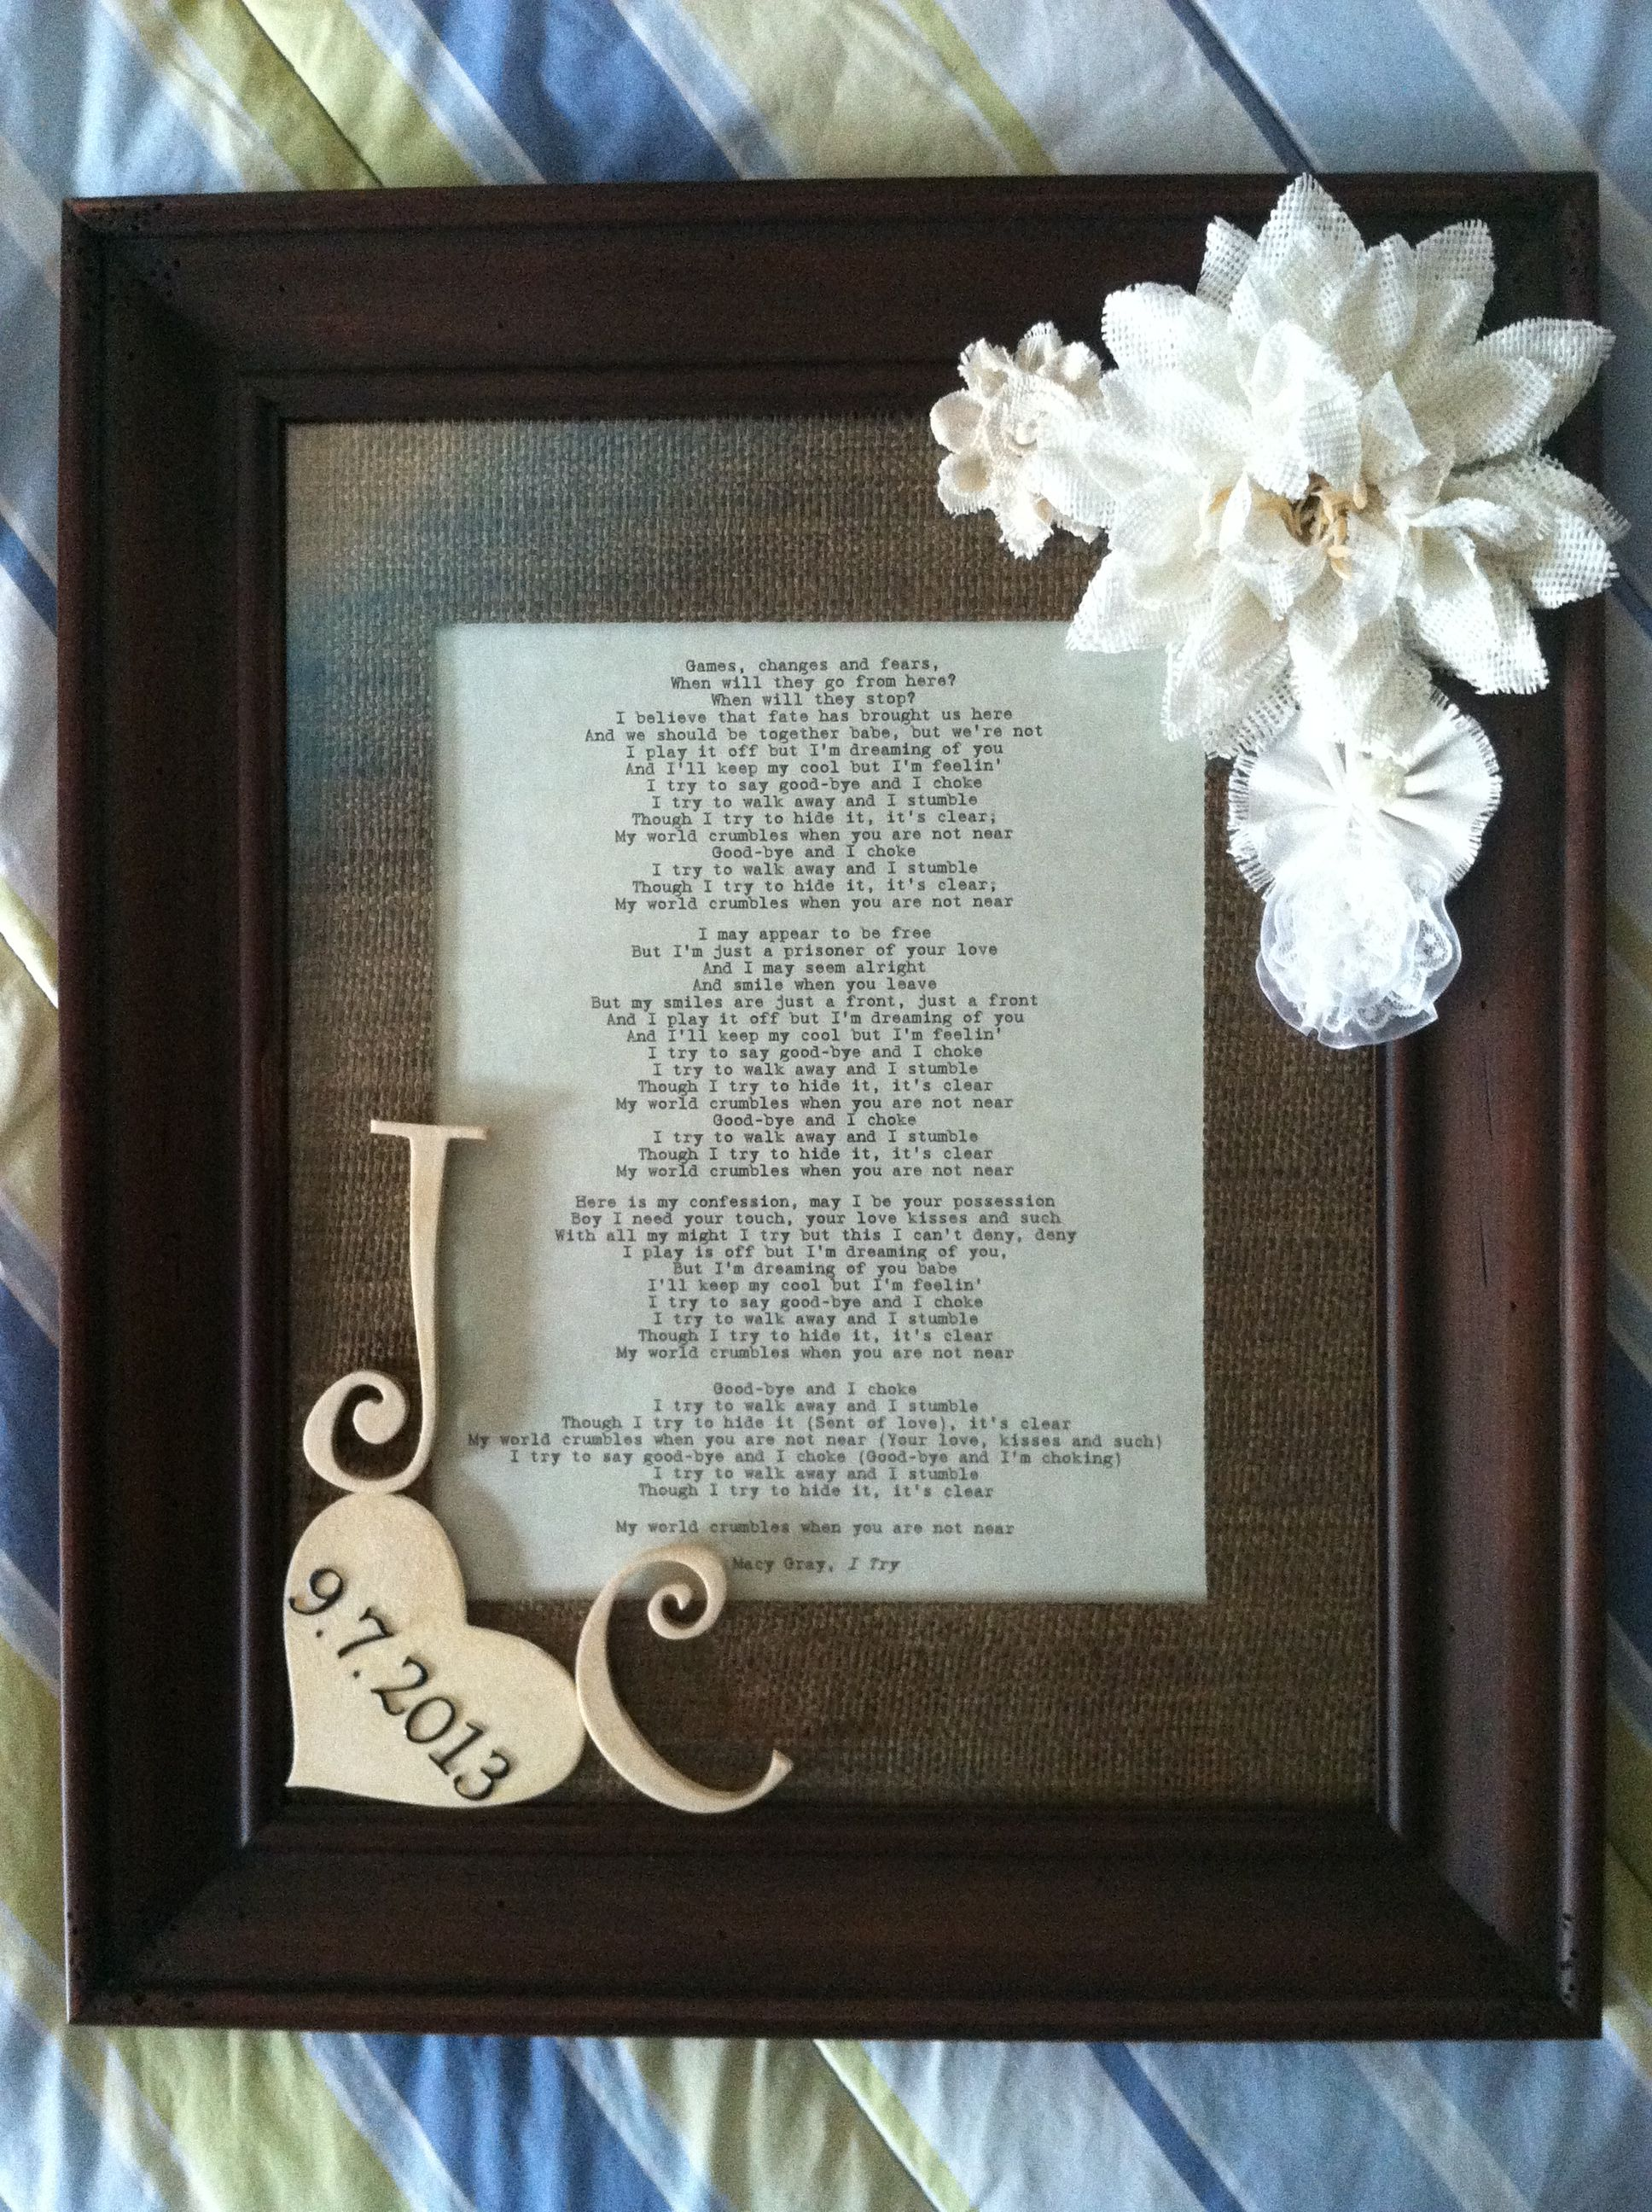 8X10 Resume Paper Interesting Framed Wedding Song For A Burlap And Lace Themed Weddingall From .